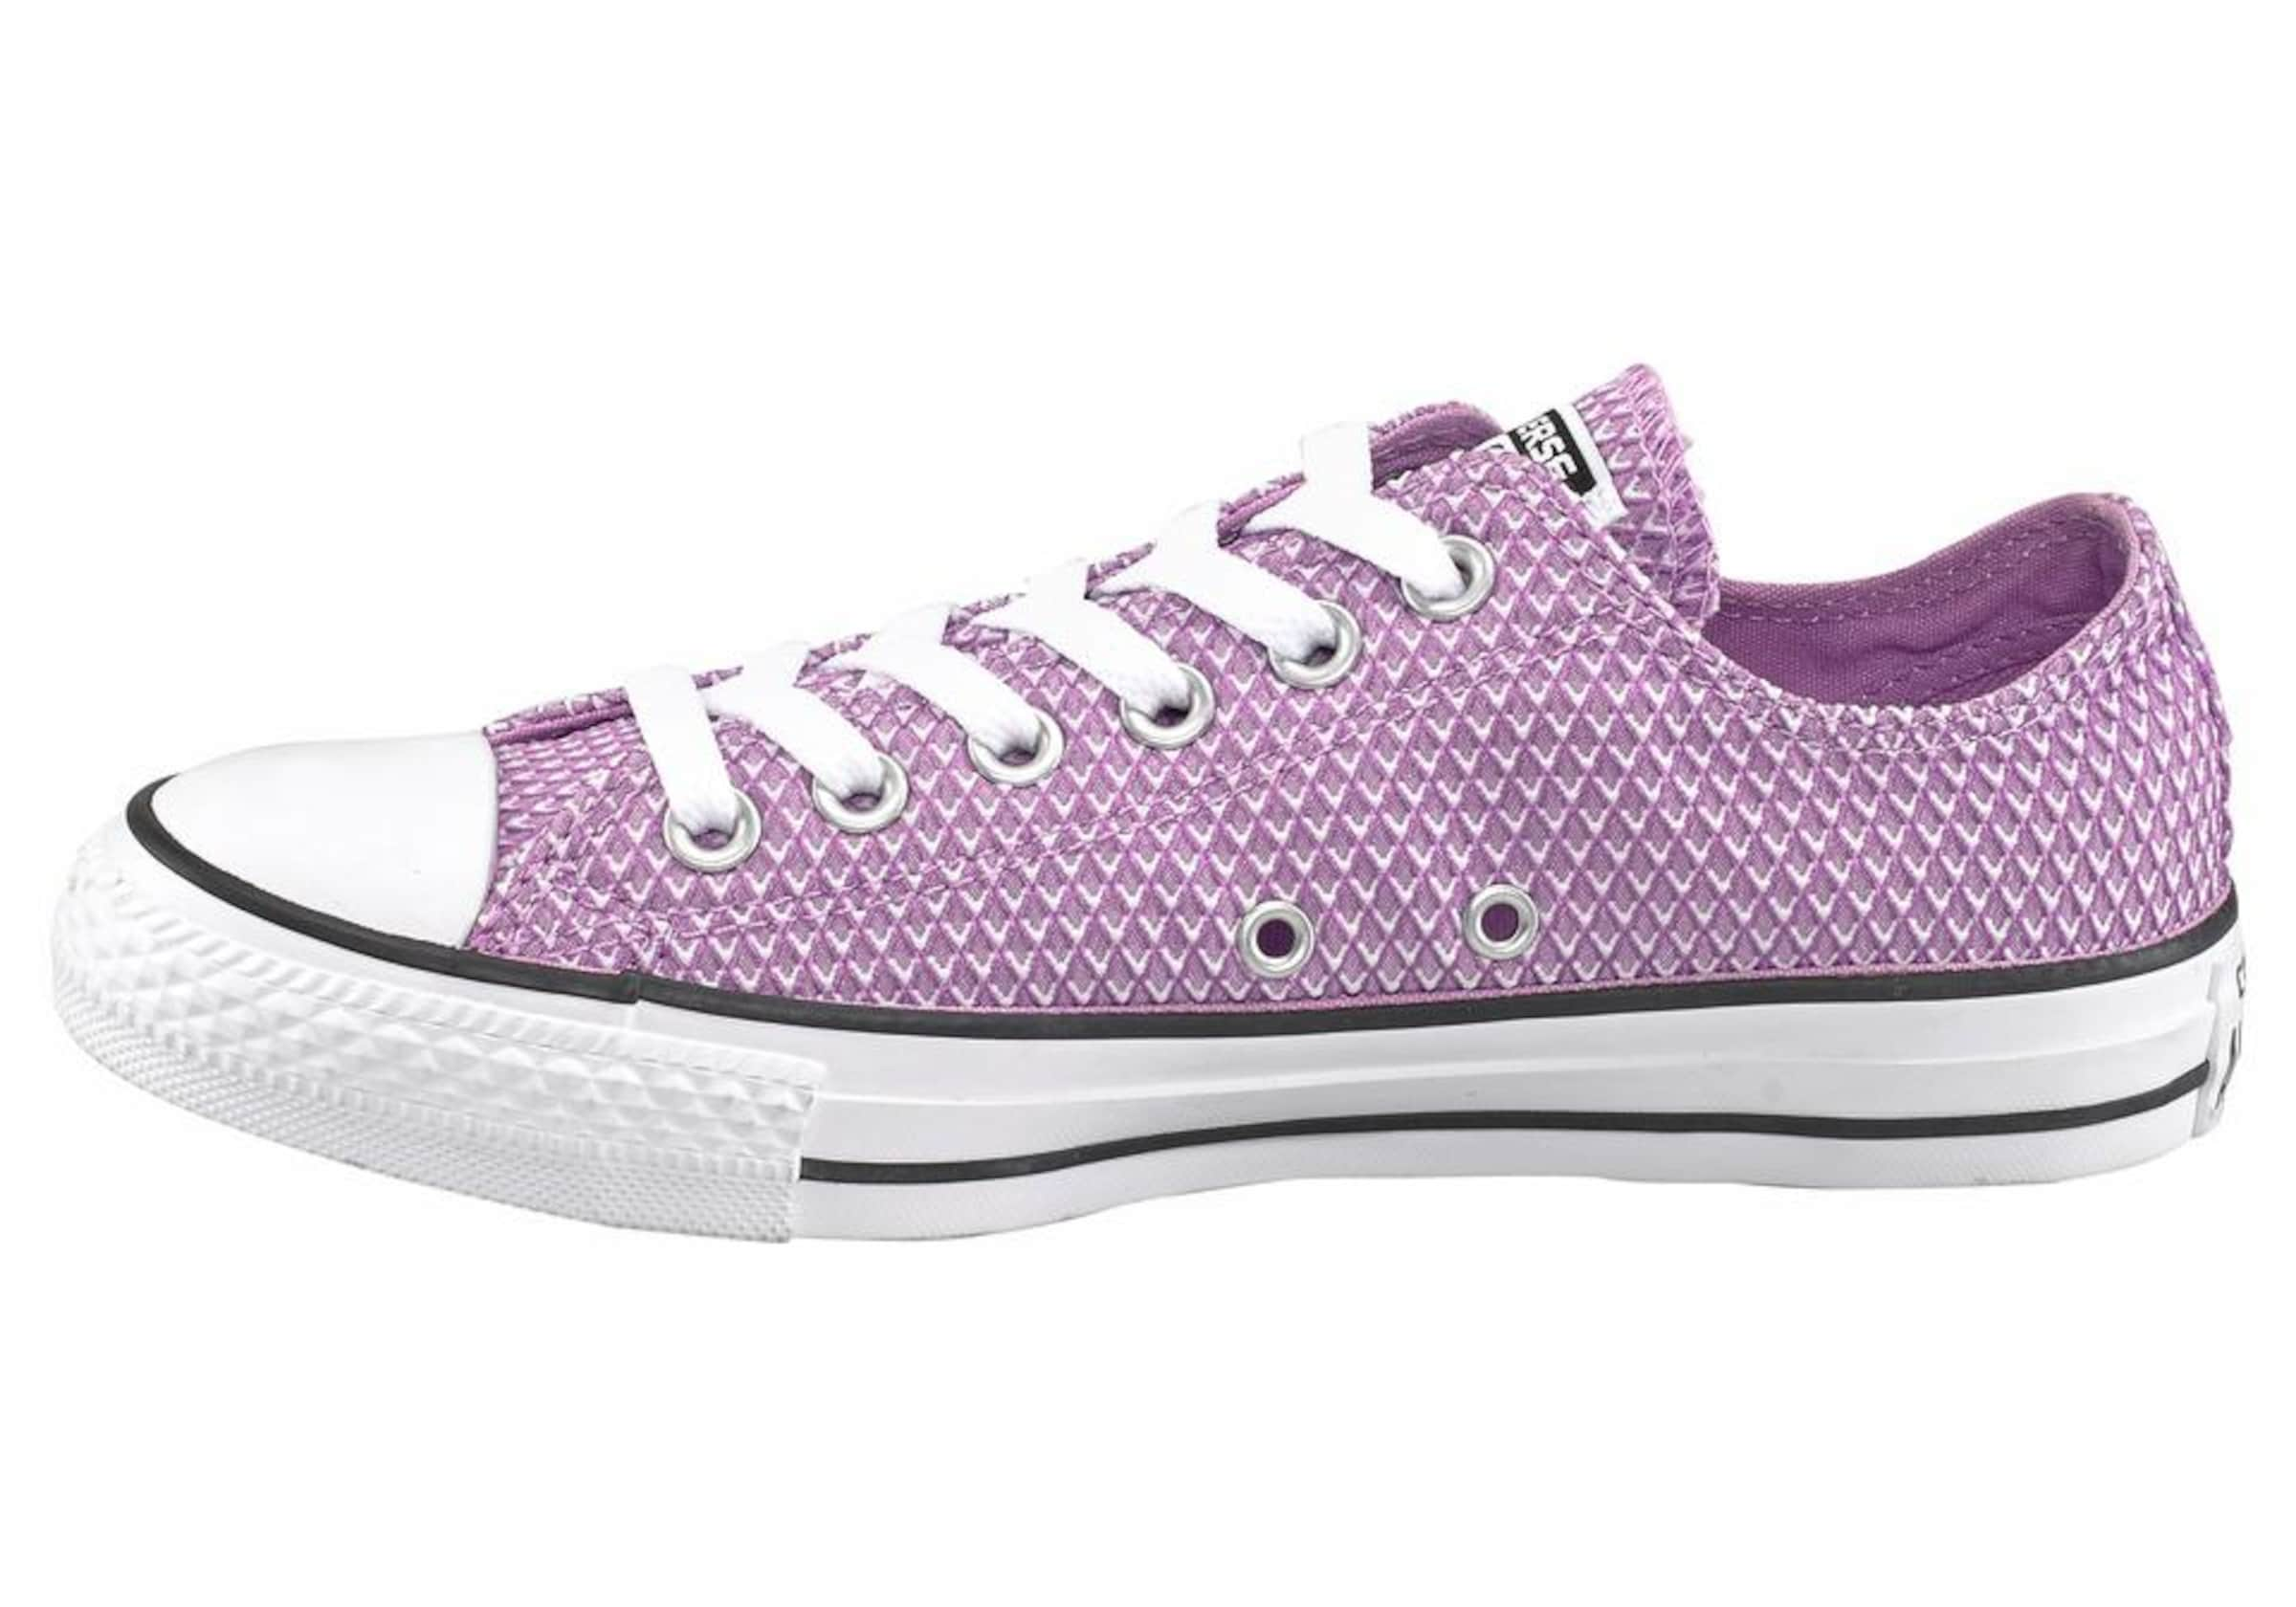 Woven' Sneaker Snake Lila In Converse 'chuck Taylor bgY6f7yv